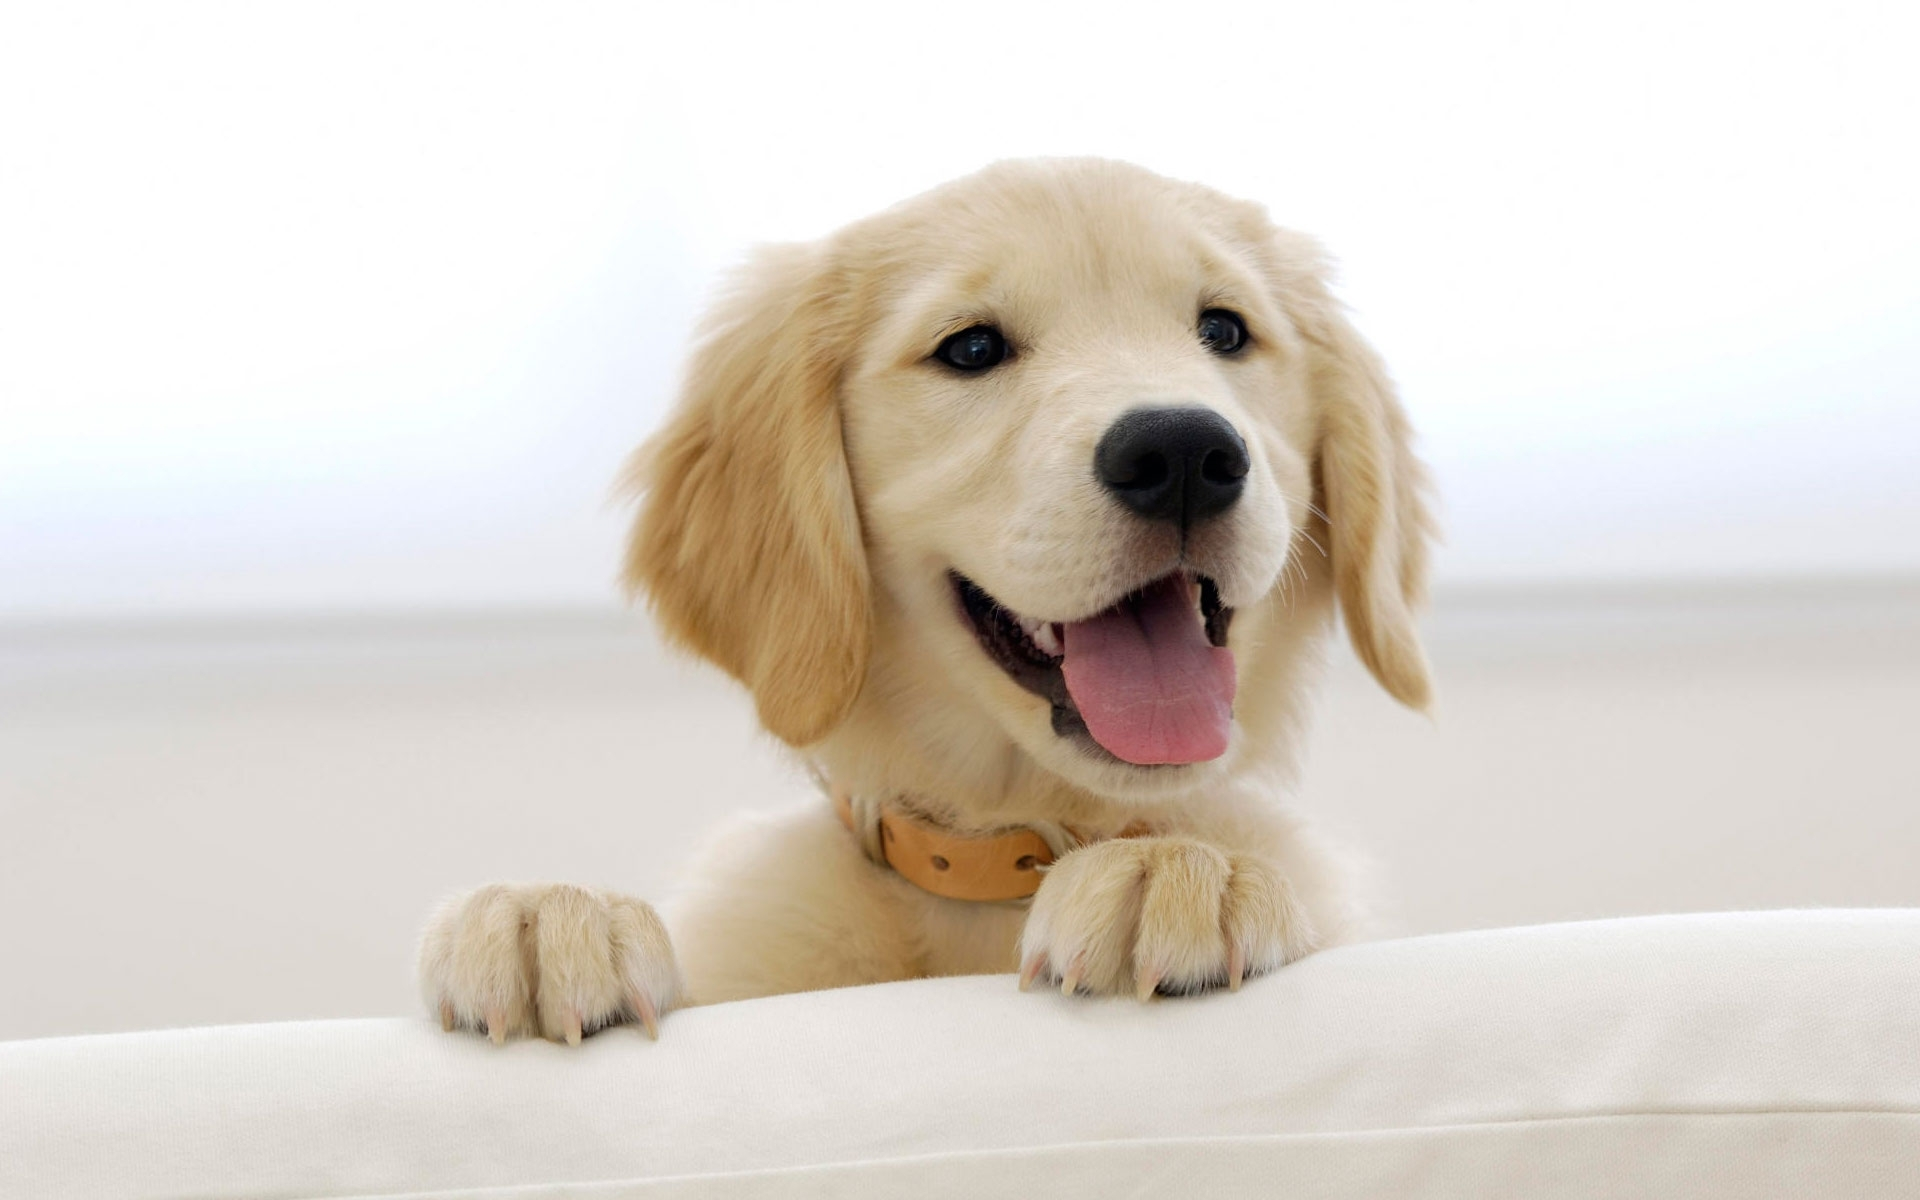 10 Most Popular Golden Retriever Puppy Wallpaper FULL HD 1920×1080 For PC Background